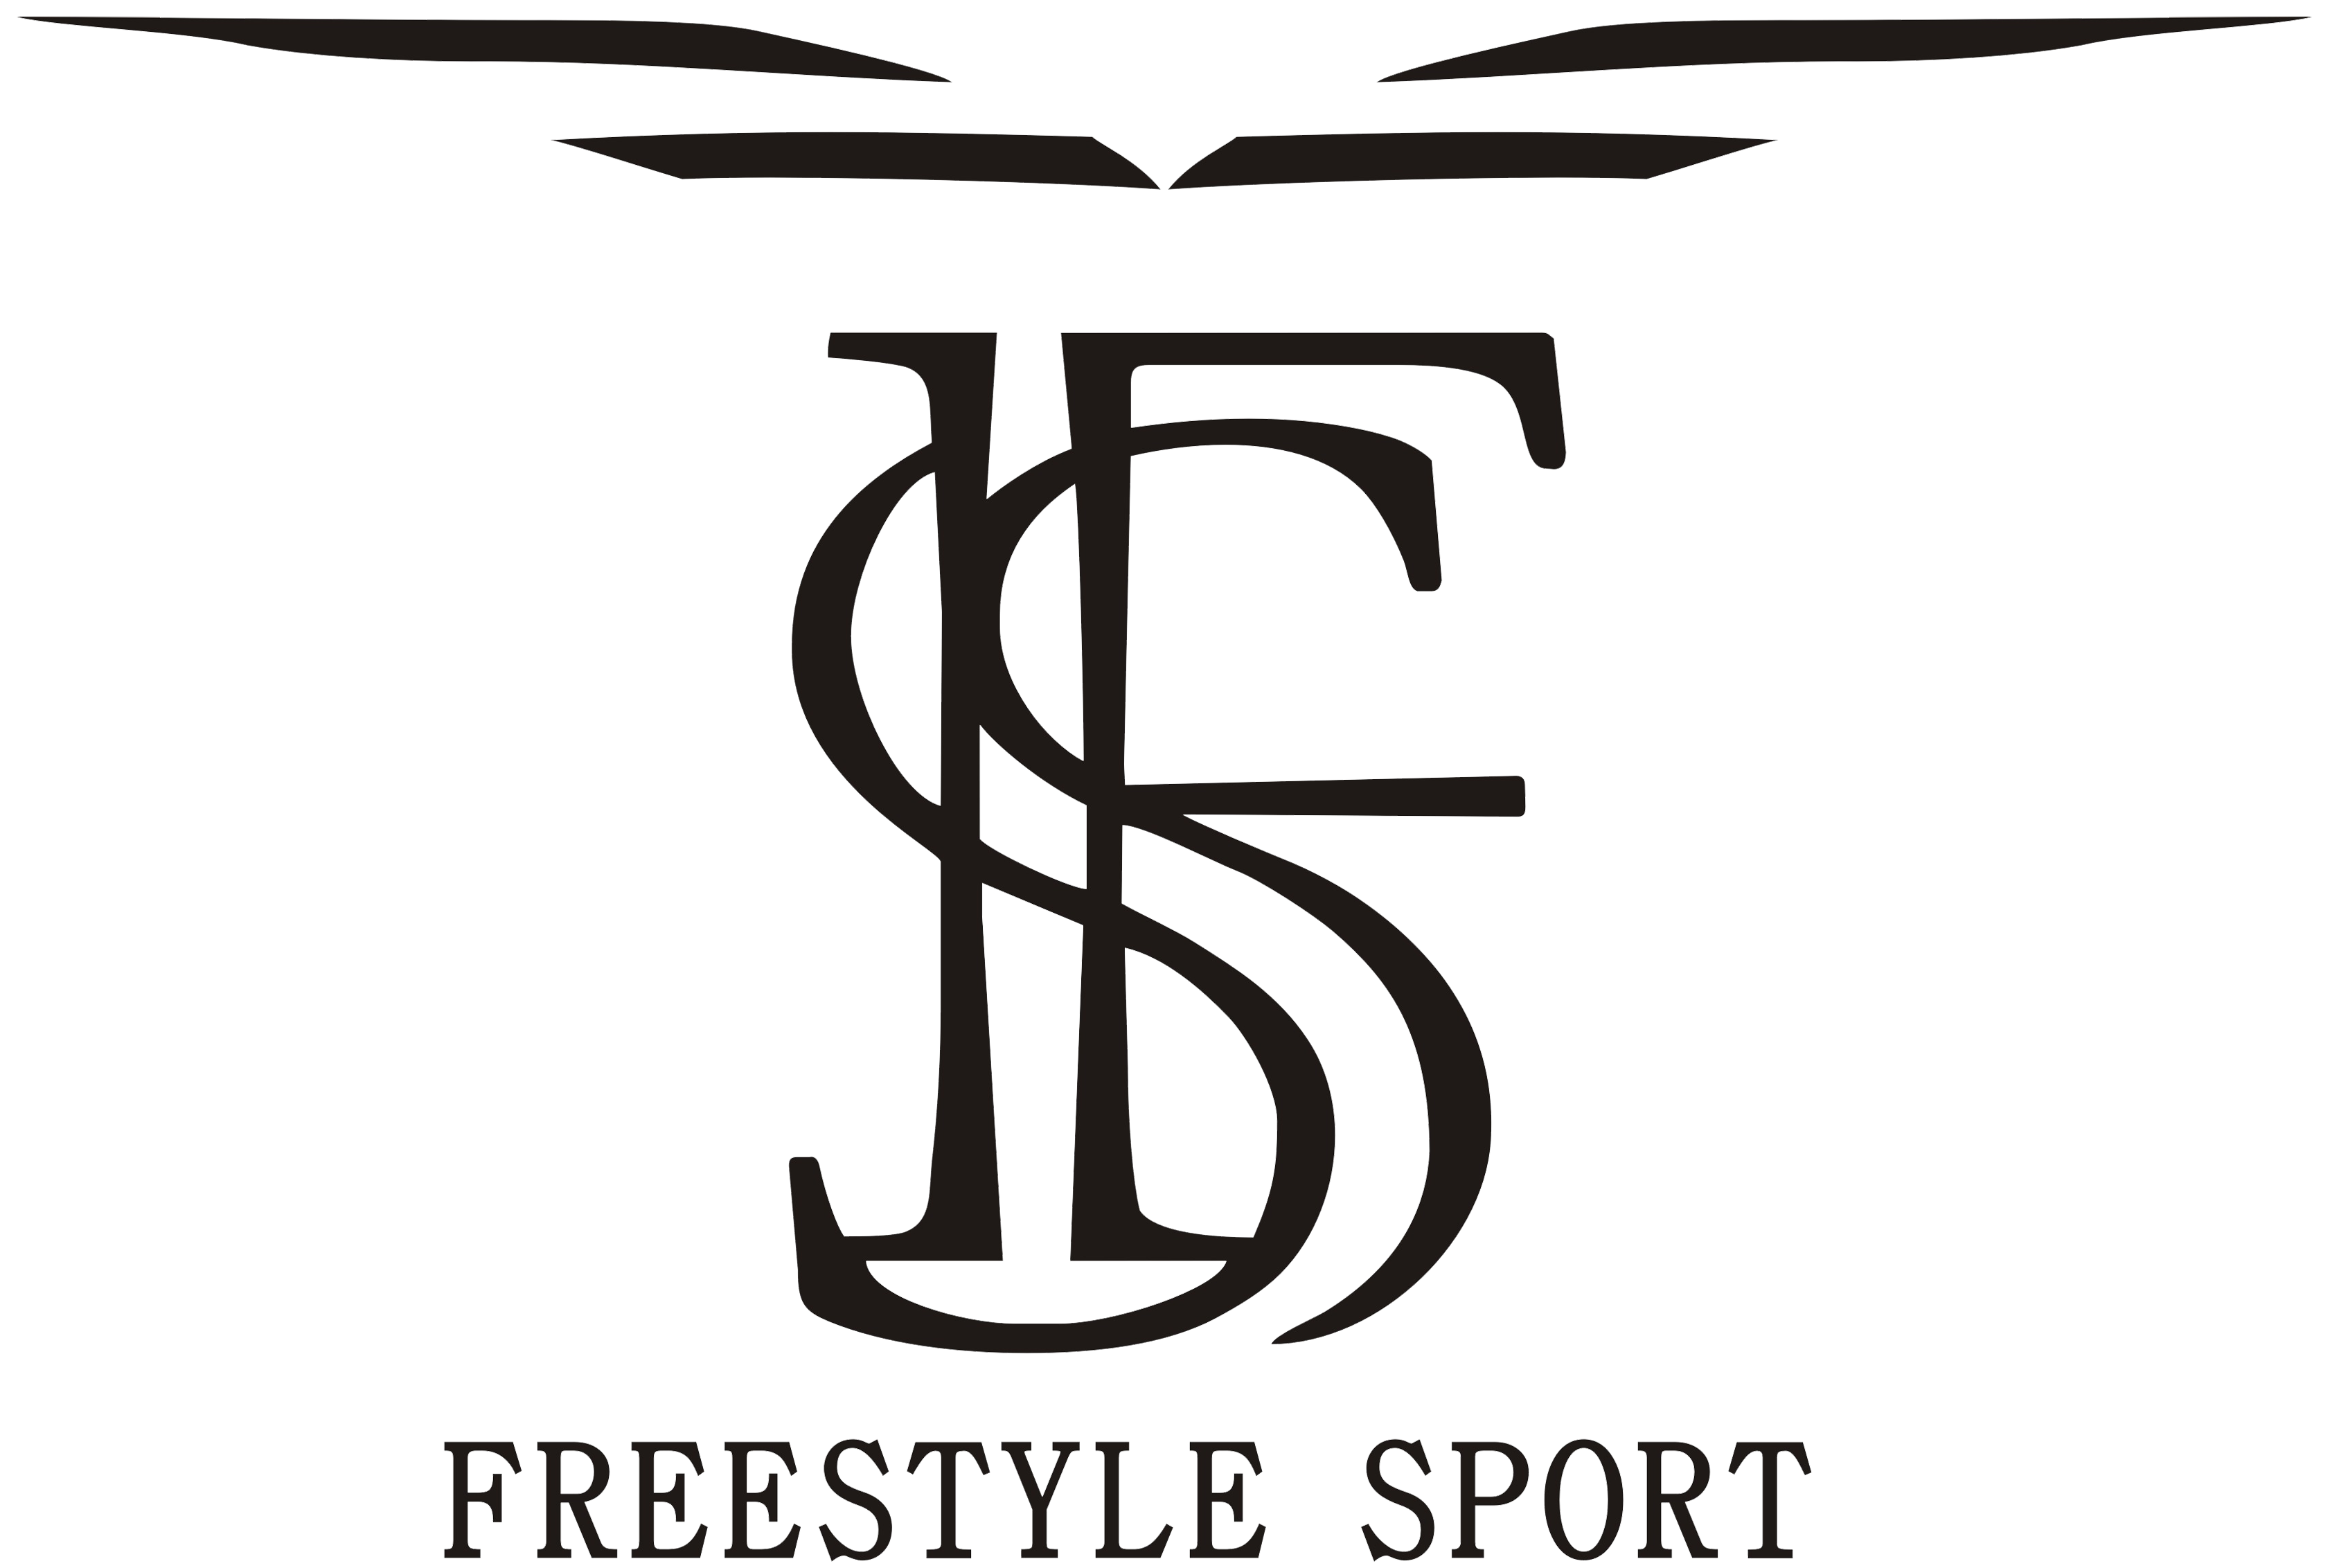 Freestyle Sport